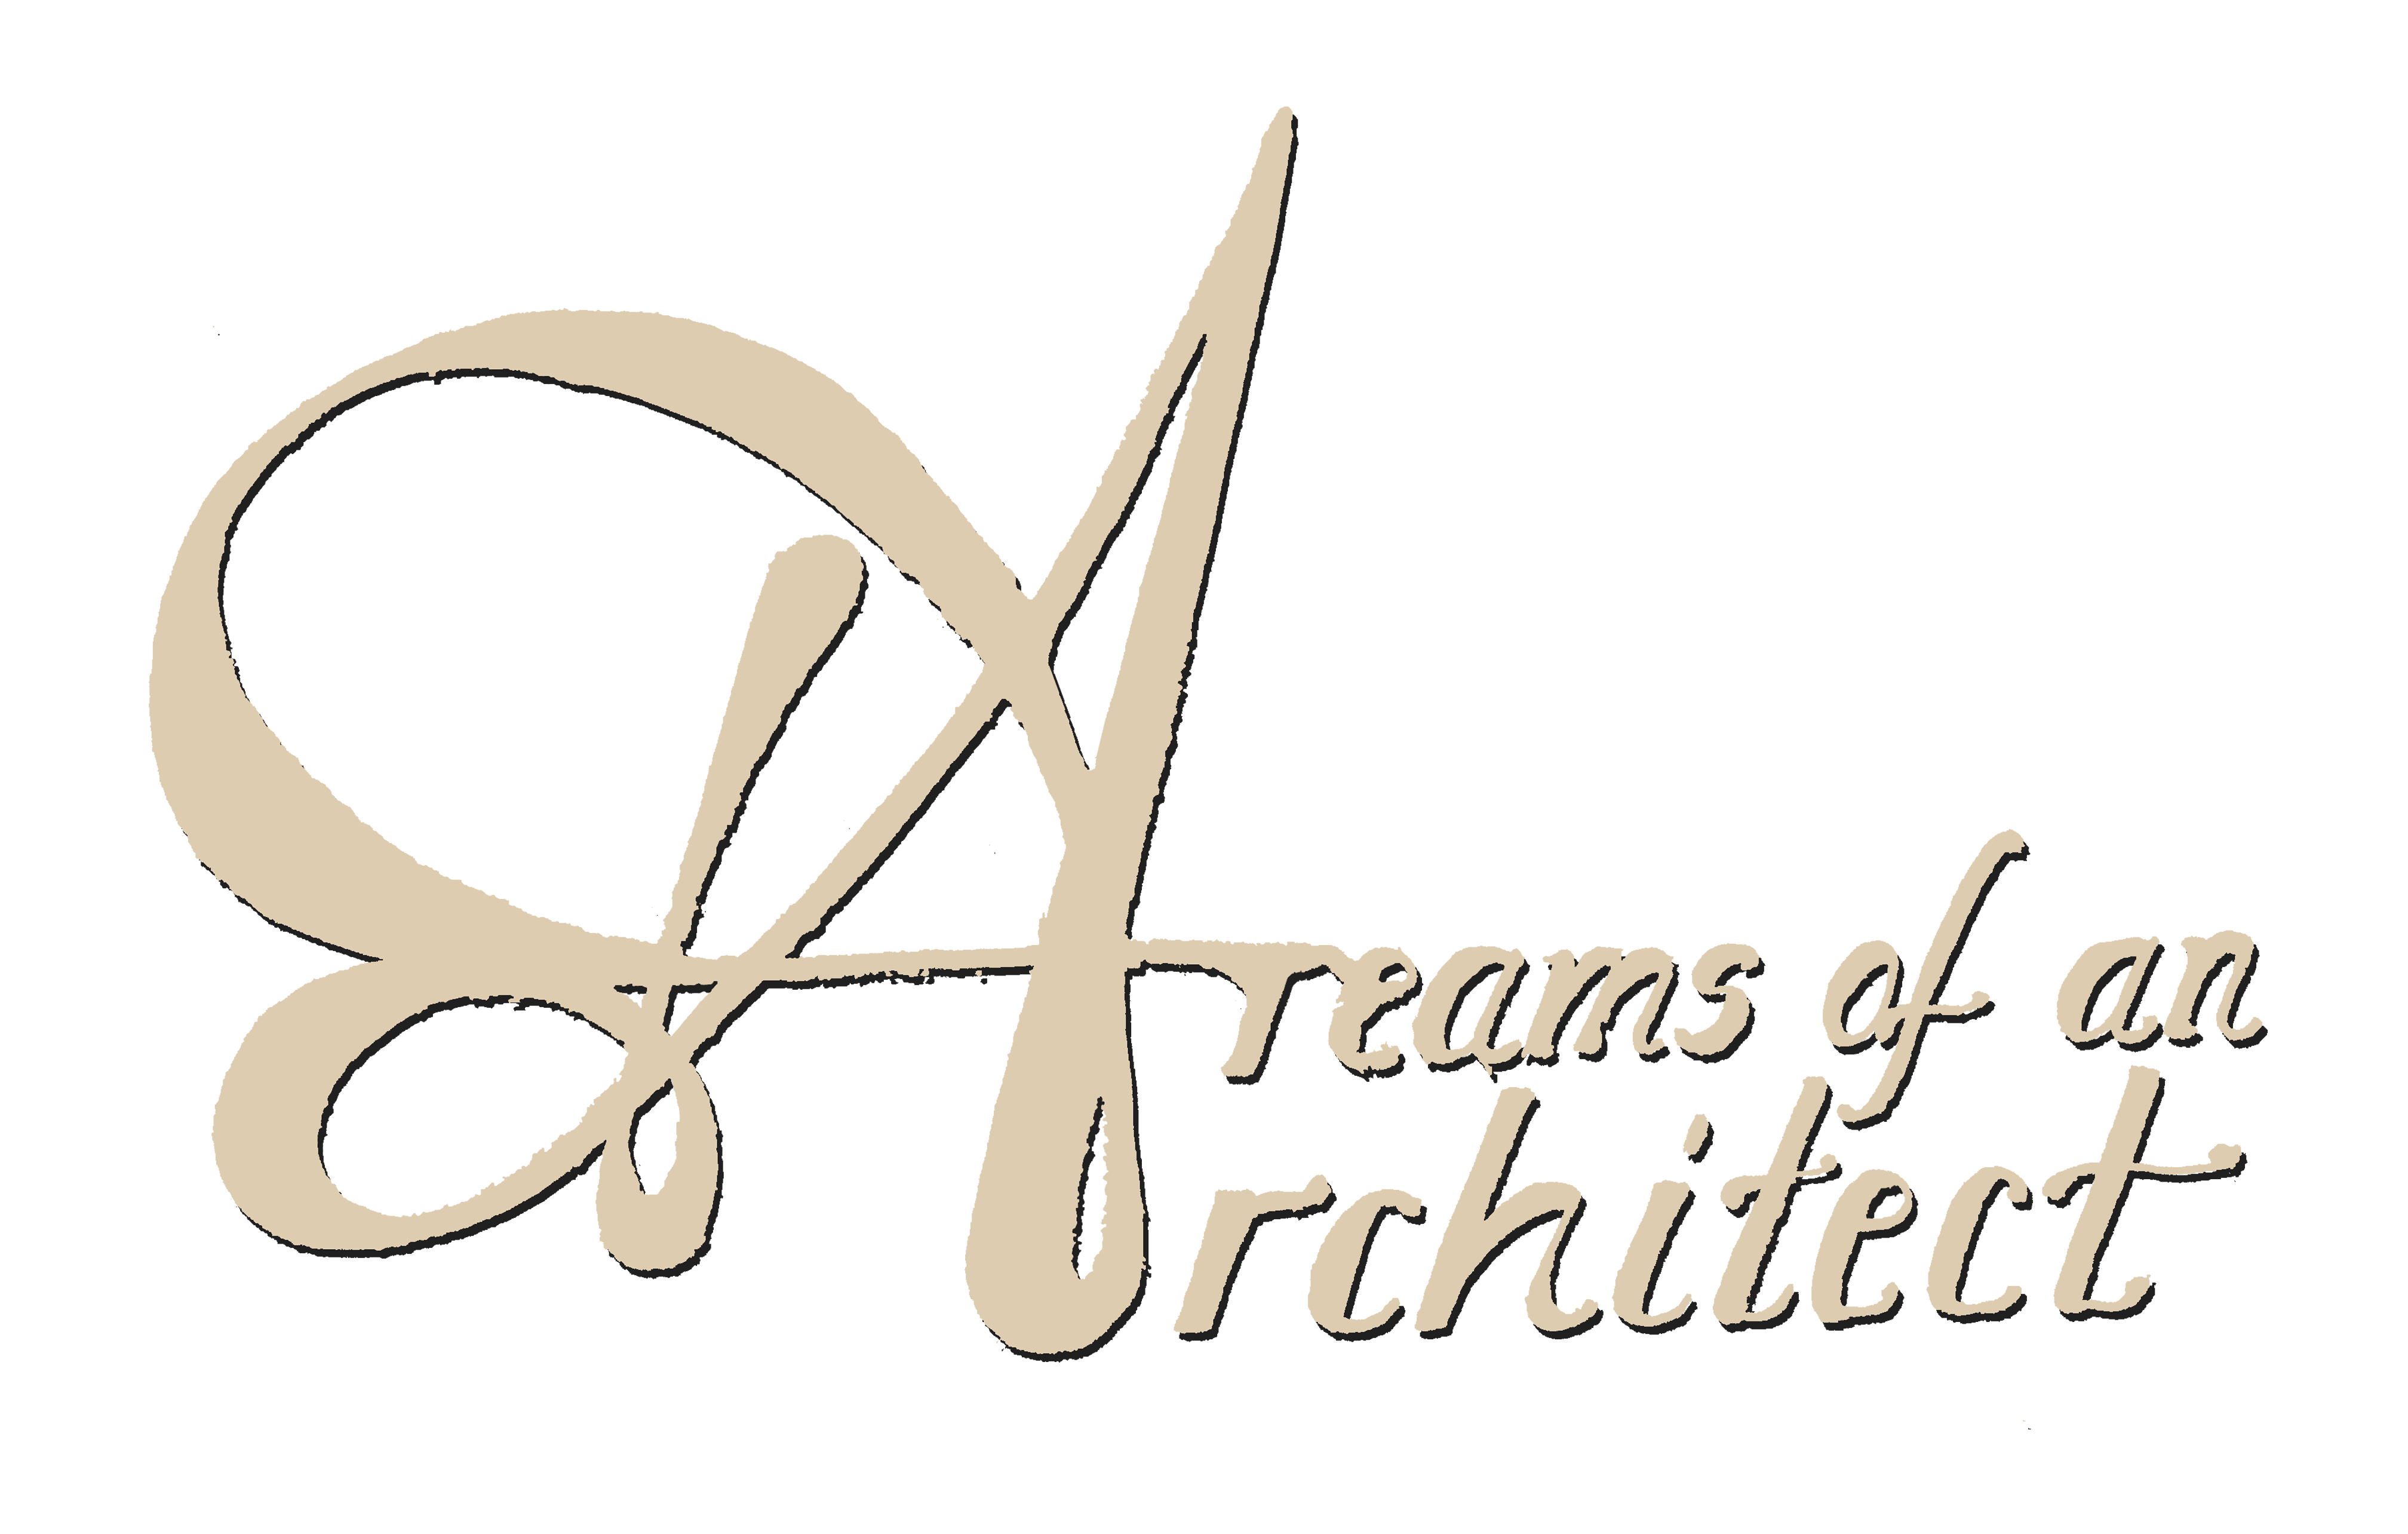 Respect clipart calligraphy. Home dreams of an